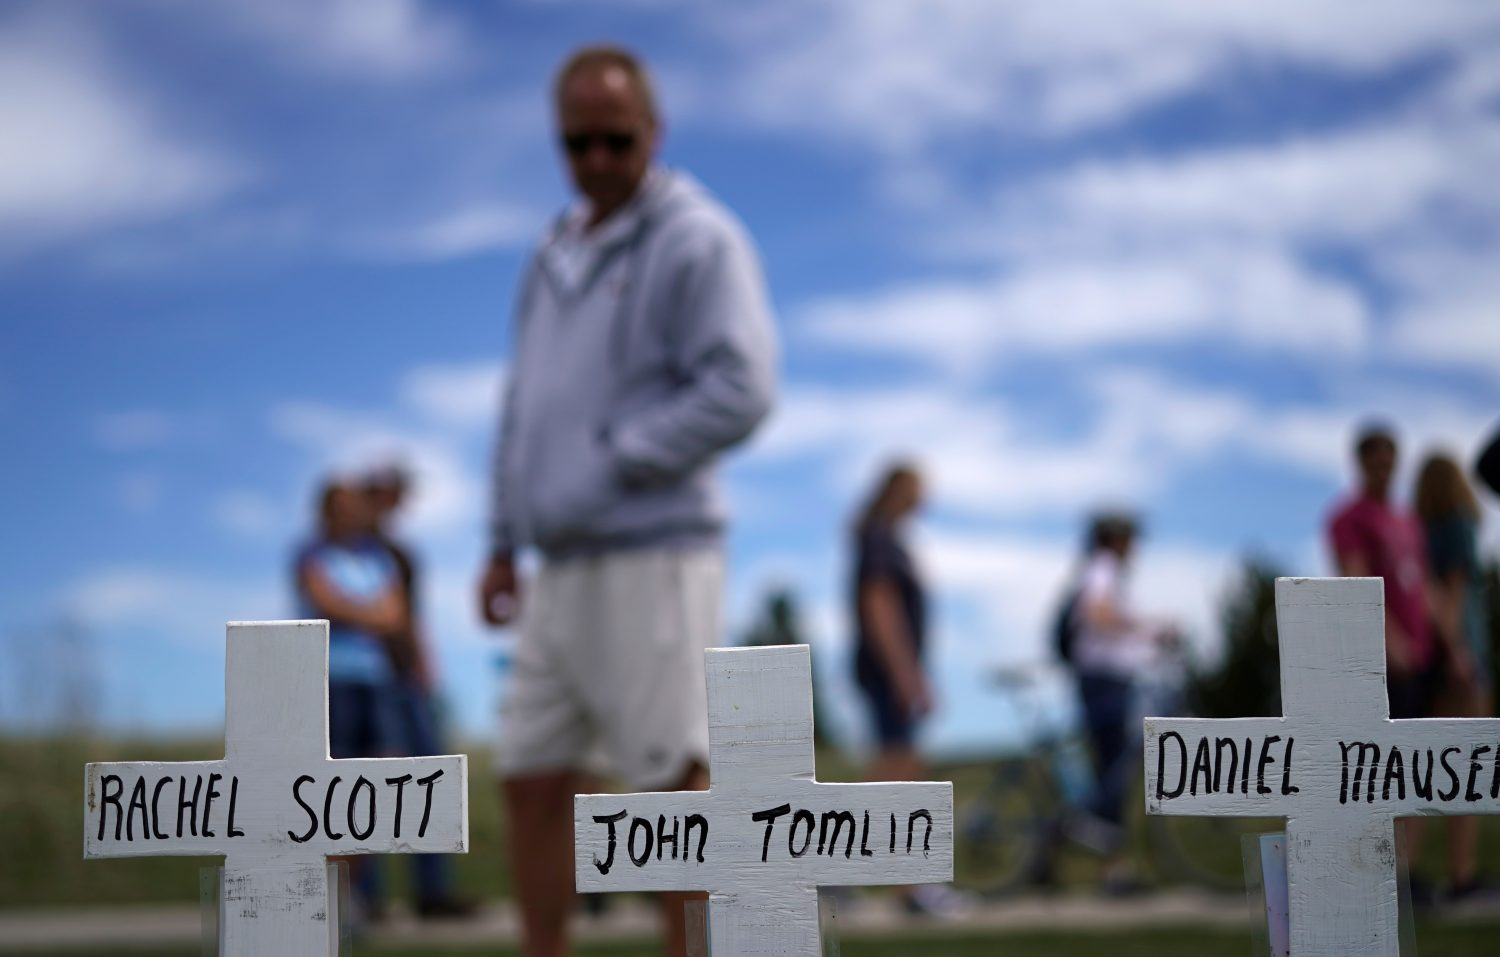 A man looks at a line of crosses commemorating those killed in the Columbine High School shooting on the 20th anniversary of the attack in Littleton, Colorado, U.S., April 20, 2019. REUTERS/Rick Wilking